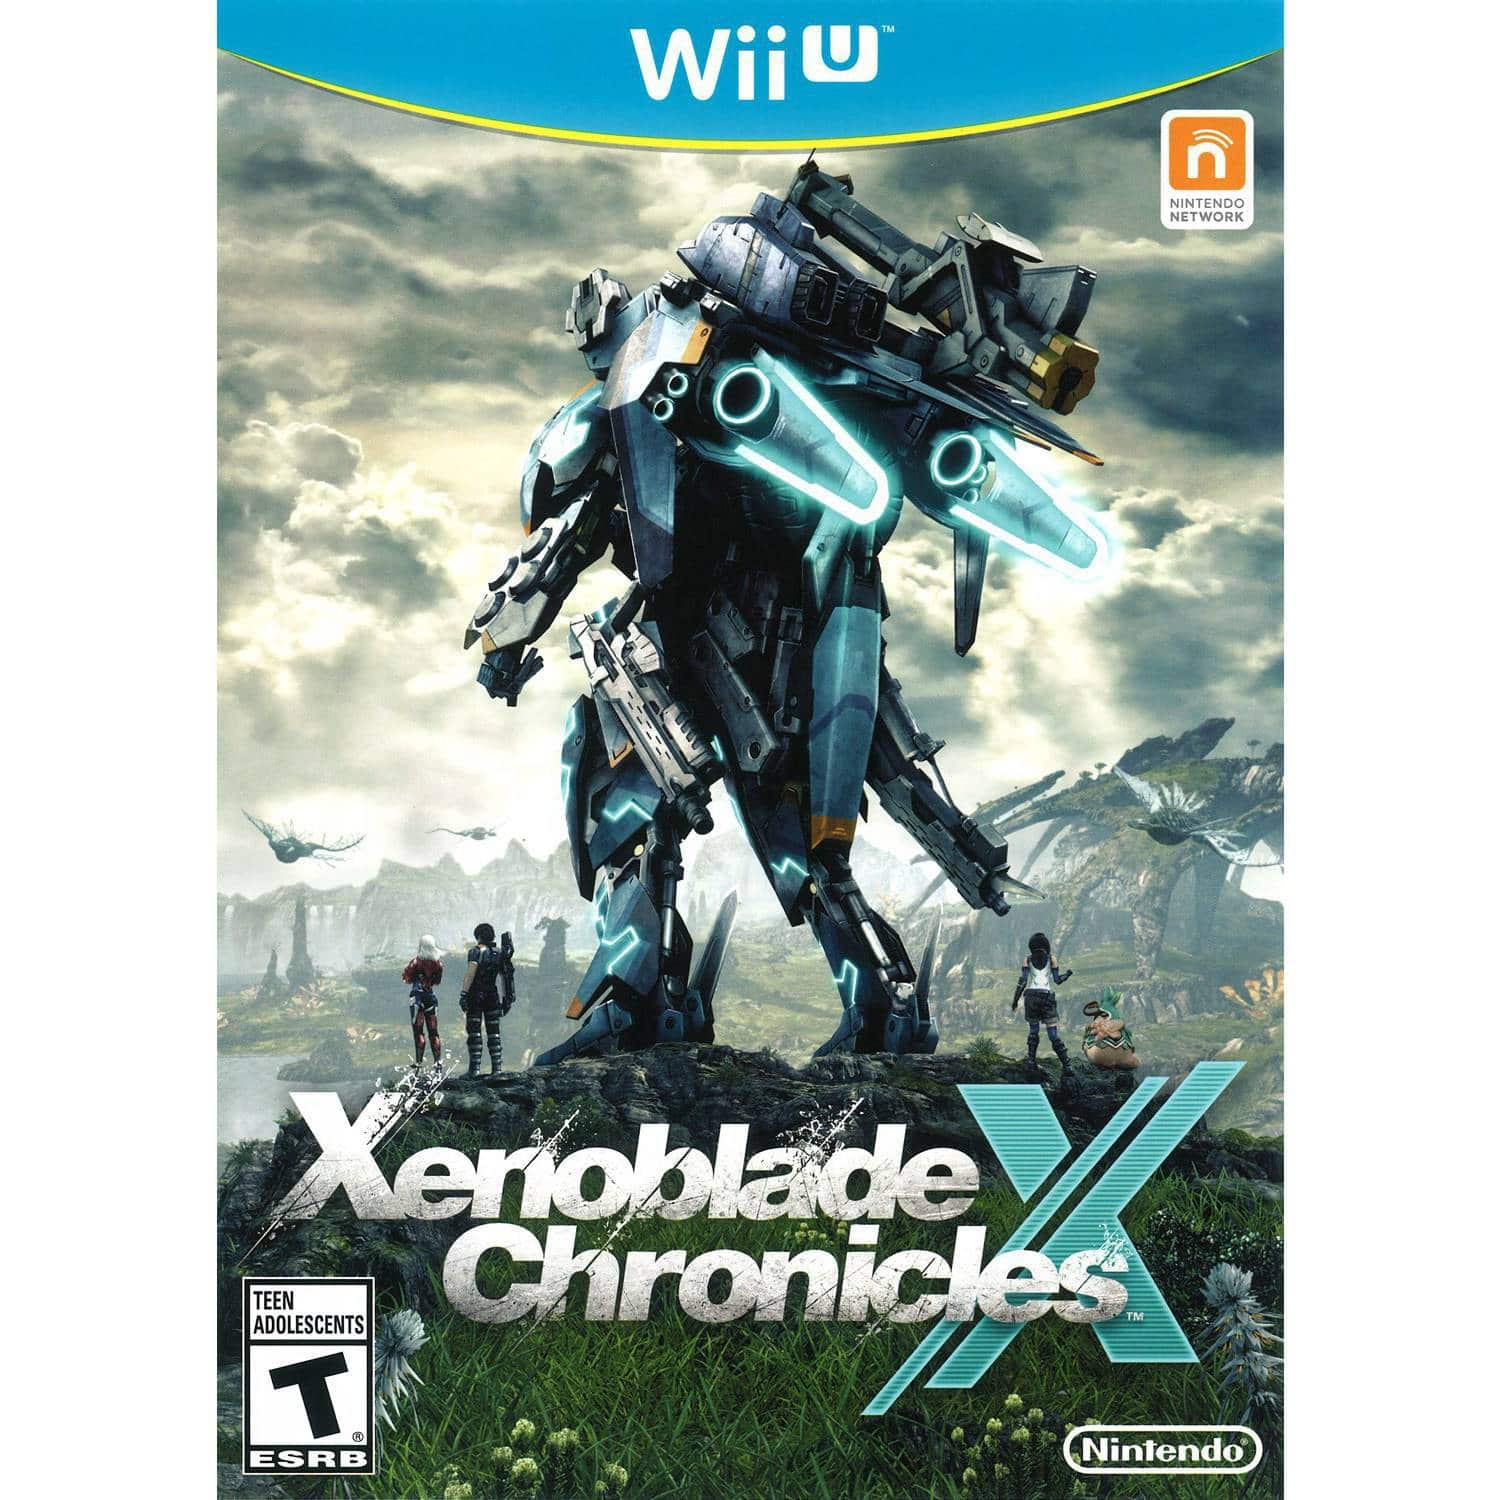 Xenoblade Chronicles X (Wii U) for $39.88 at Walmart.com